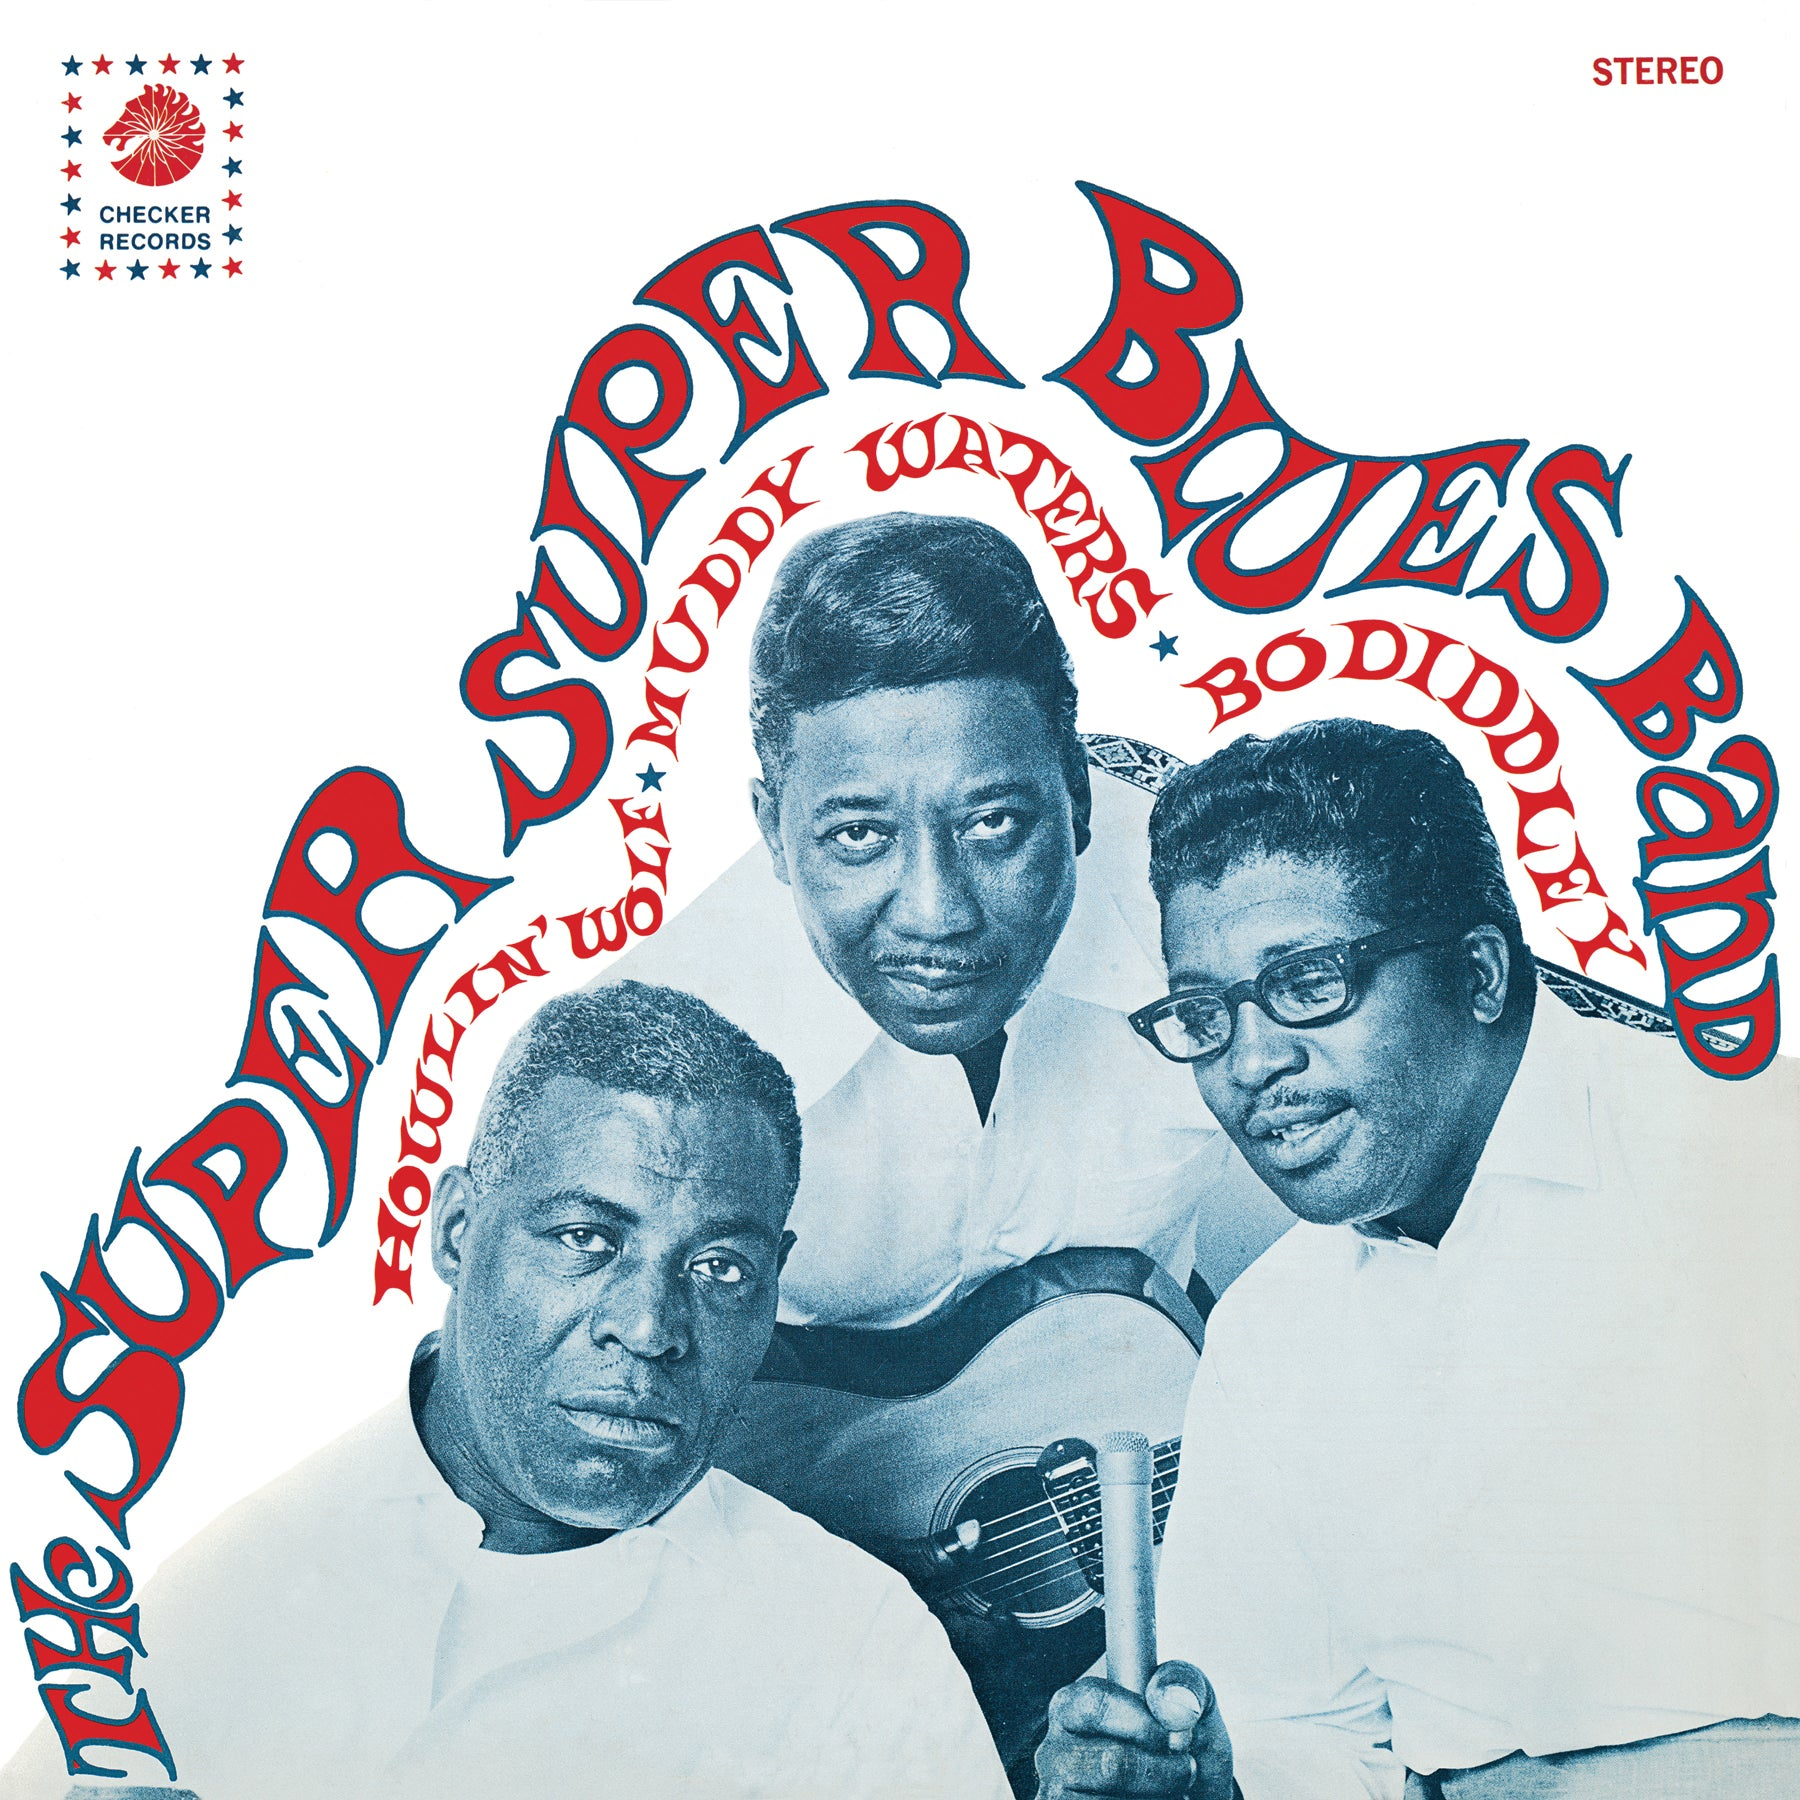 Howlin' Wolf, Muddy Waters & Bo Diddley - Super Super Blues Band